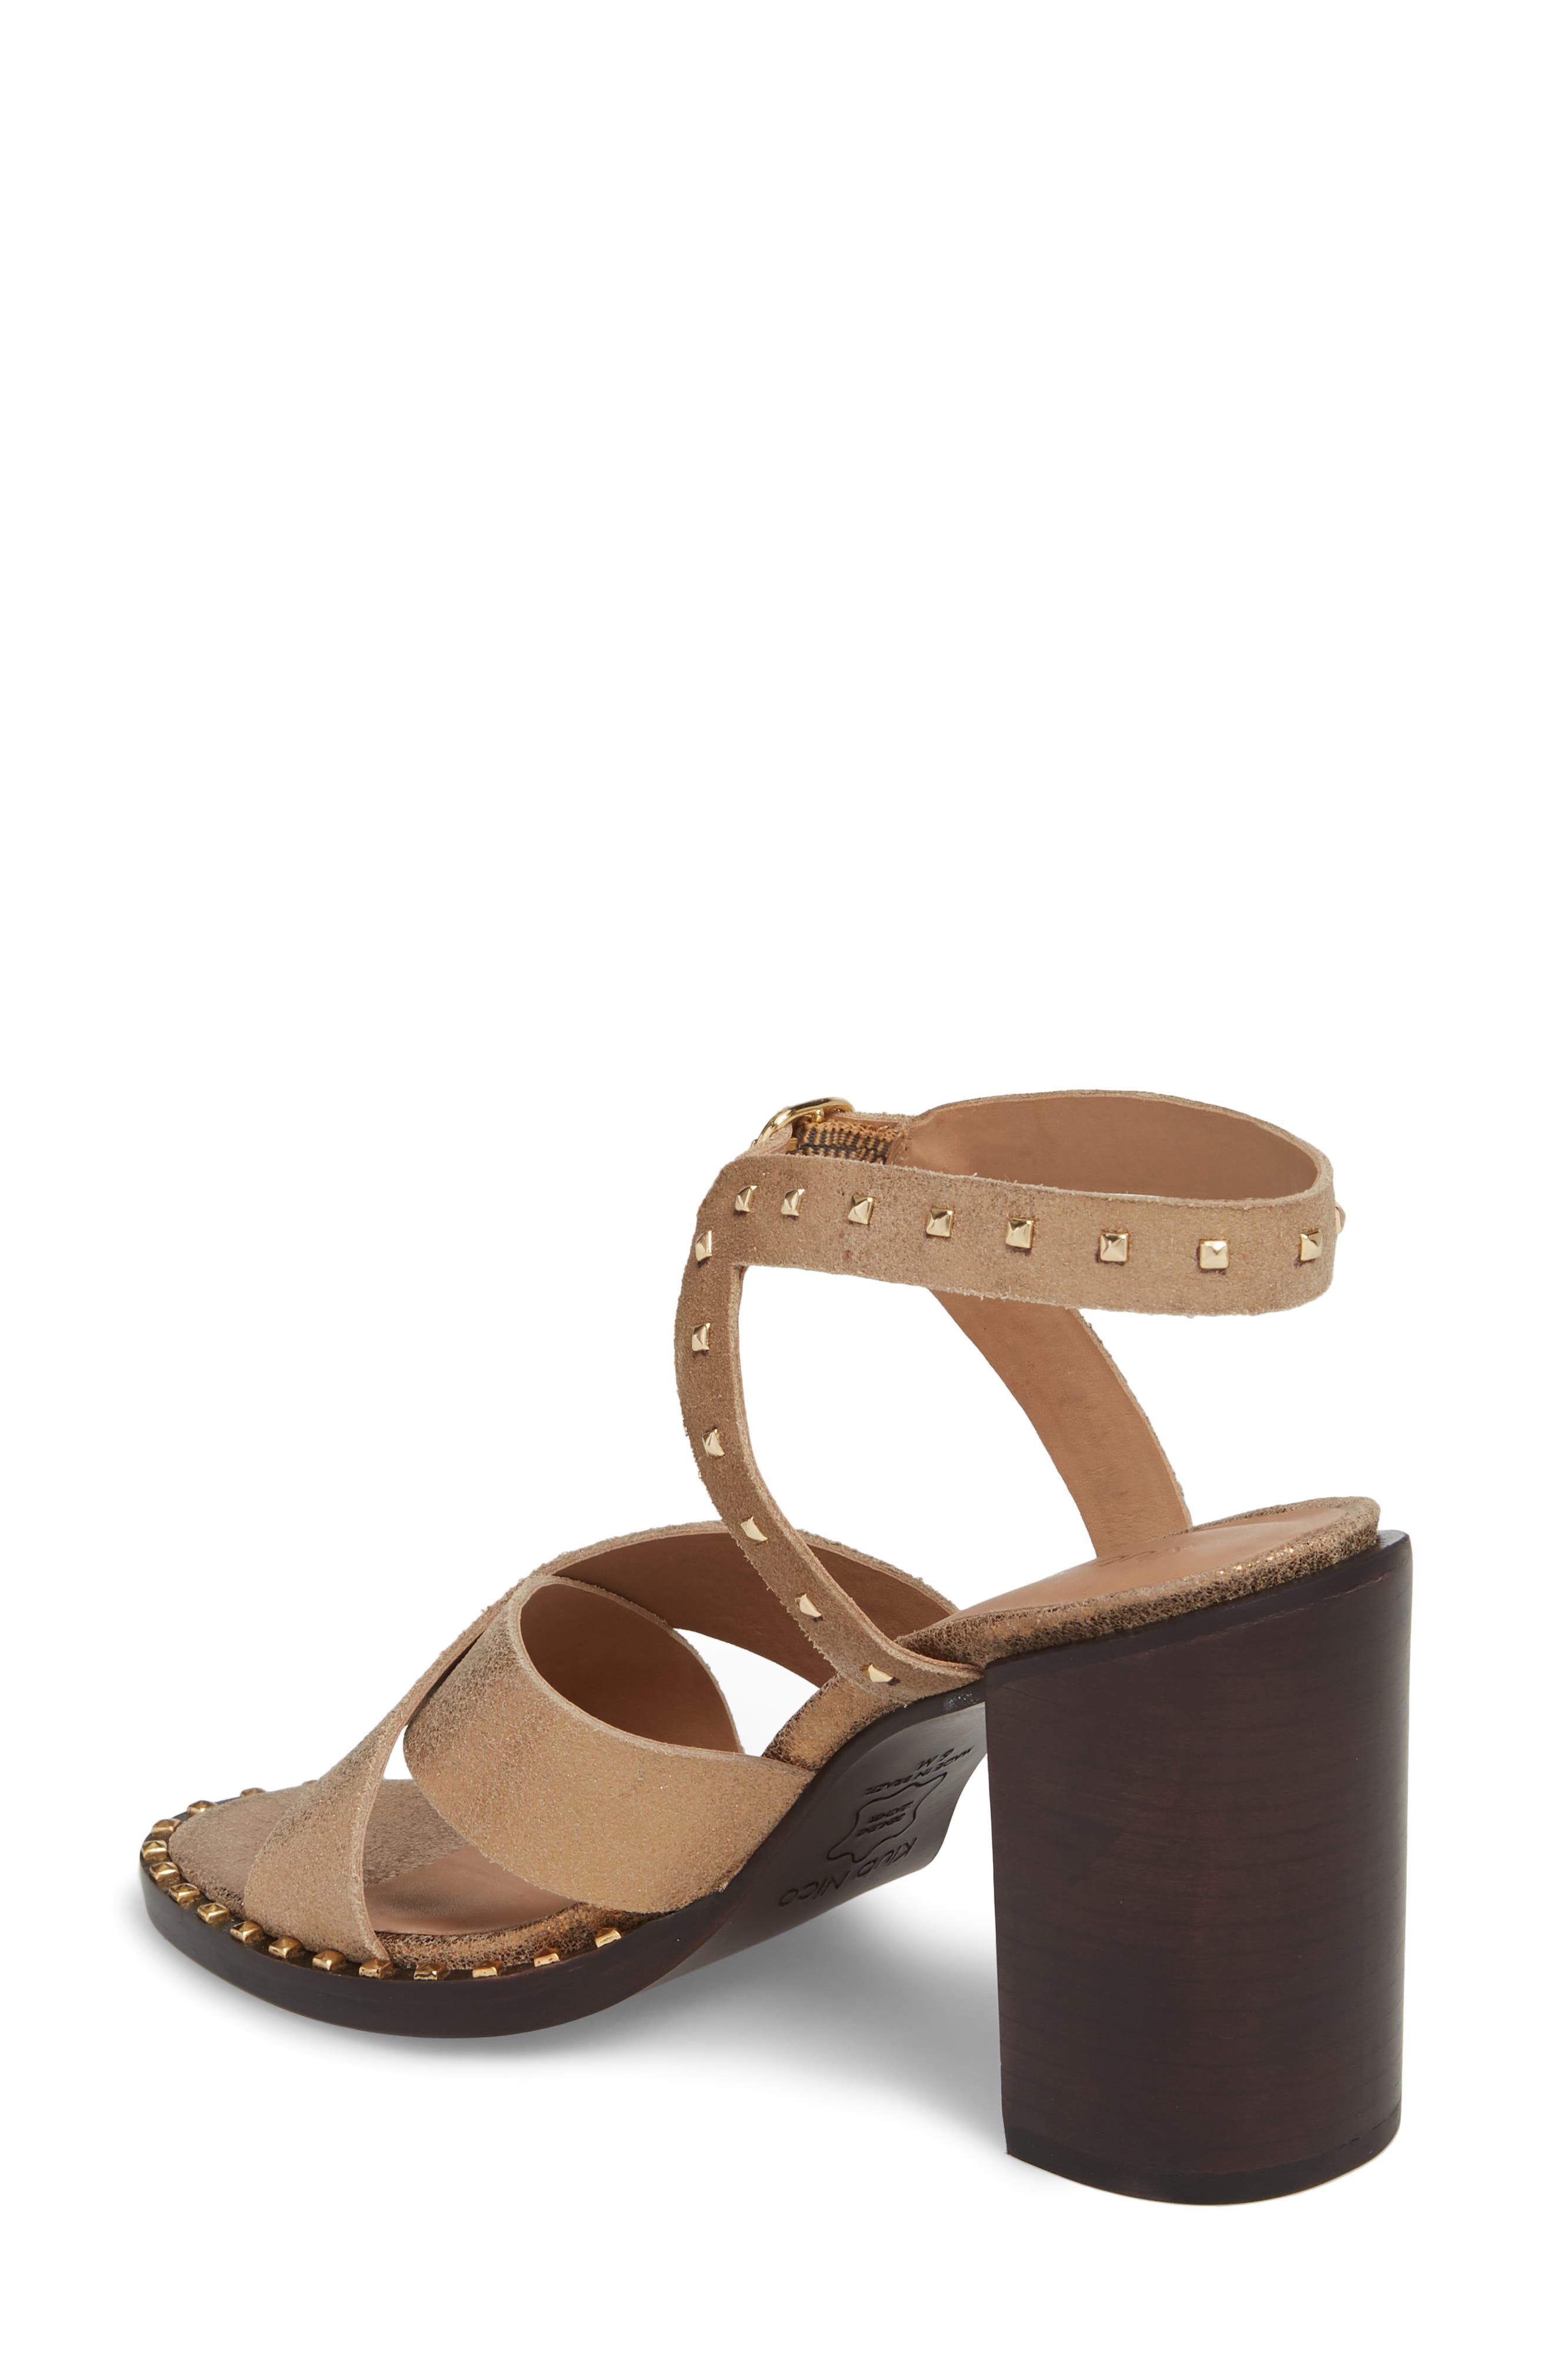 Tabia Sandal,                             Alternate thumbnail 2, color,                             Bronze Suede